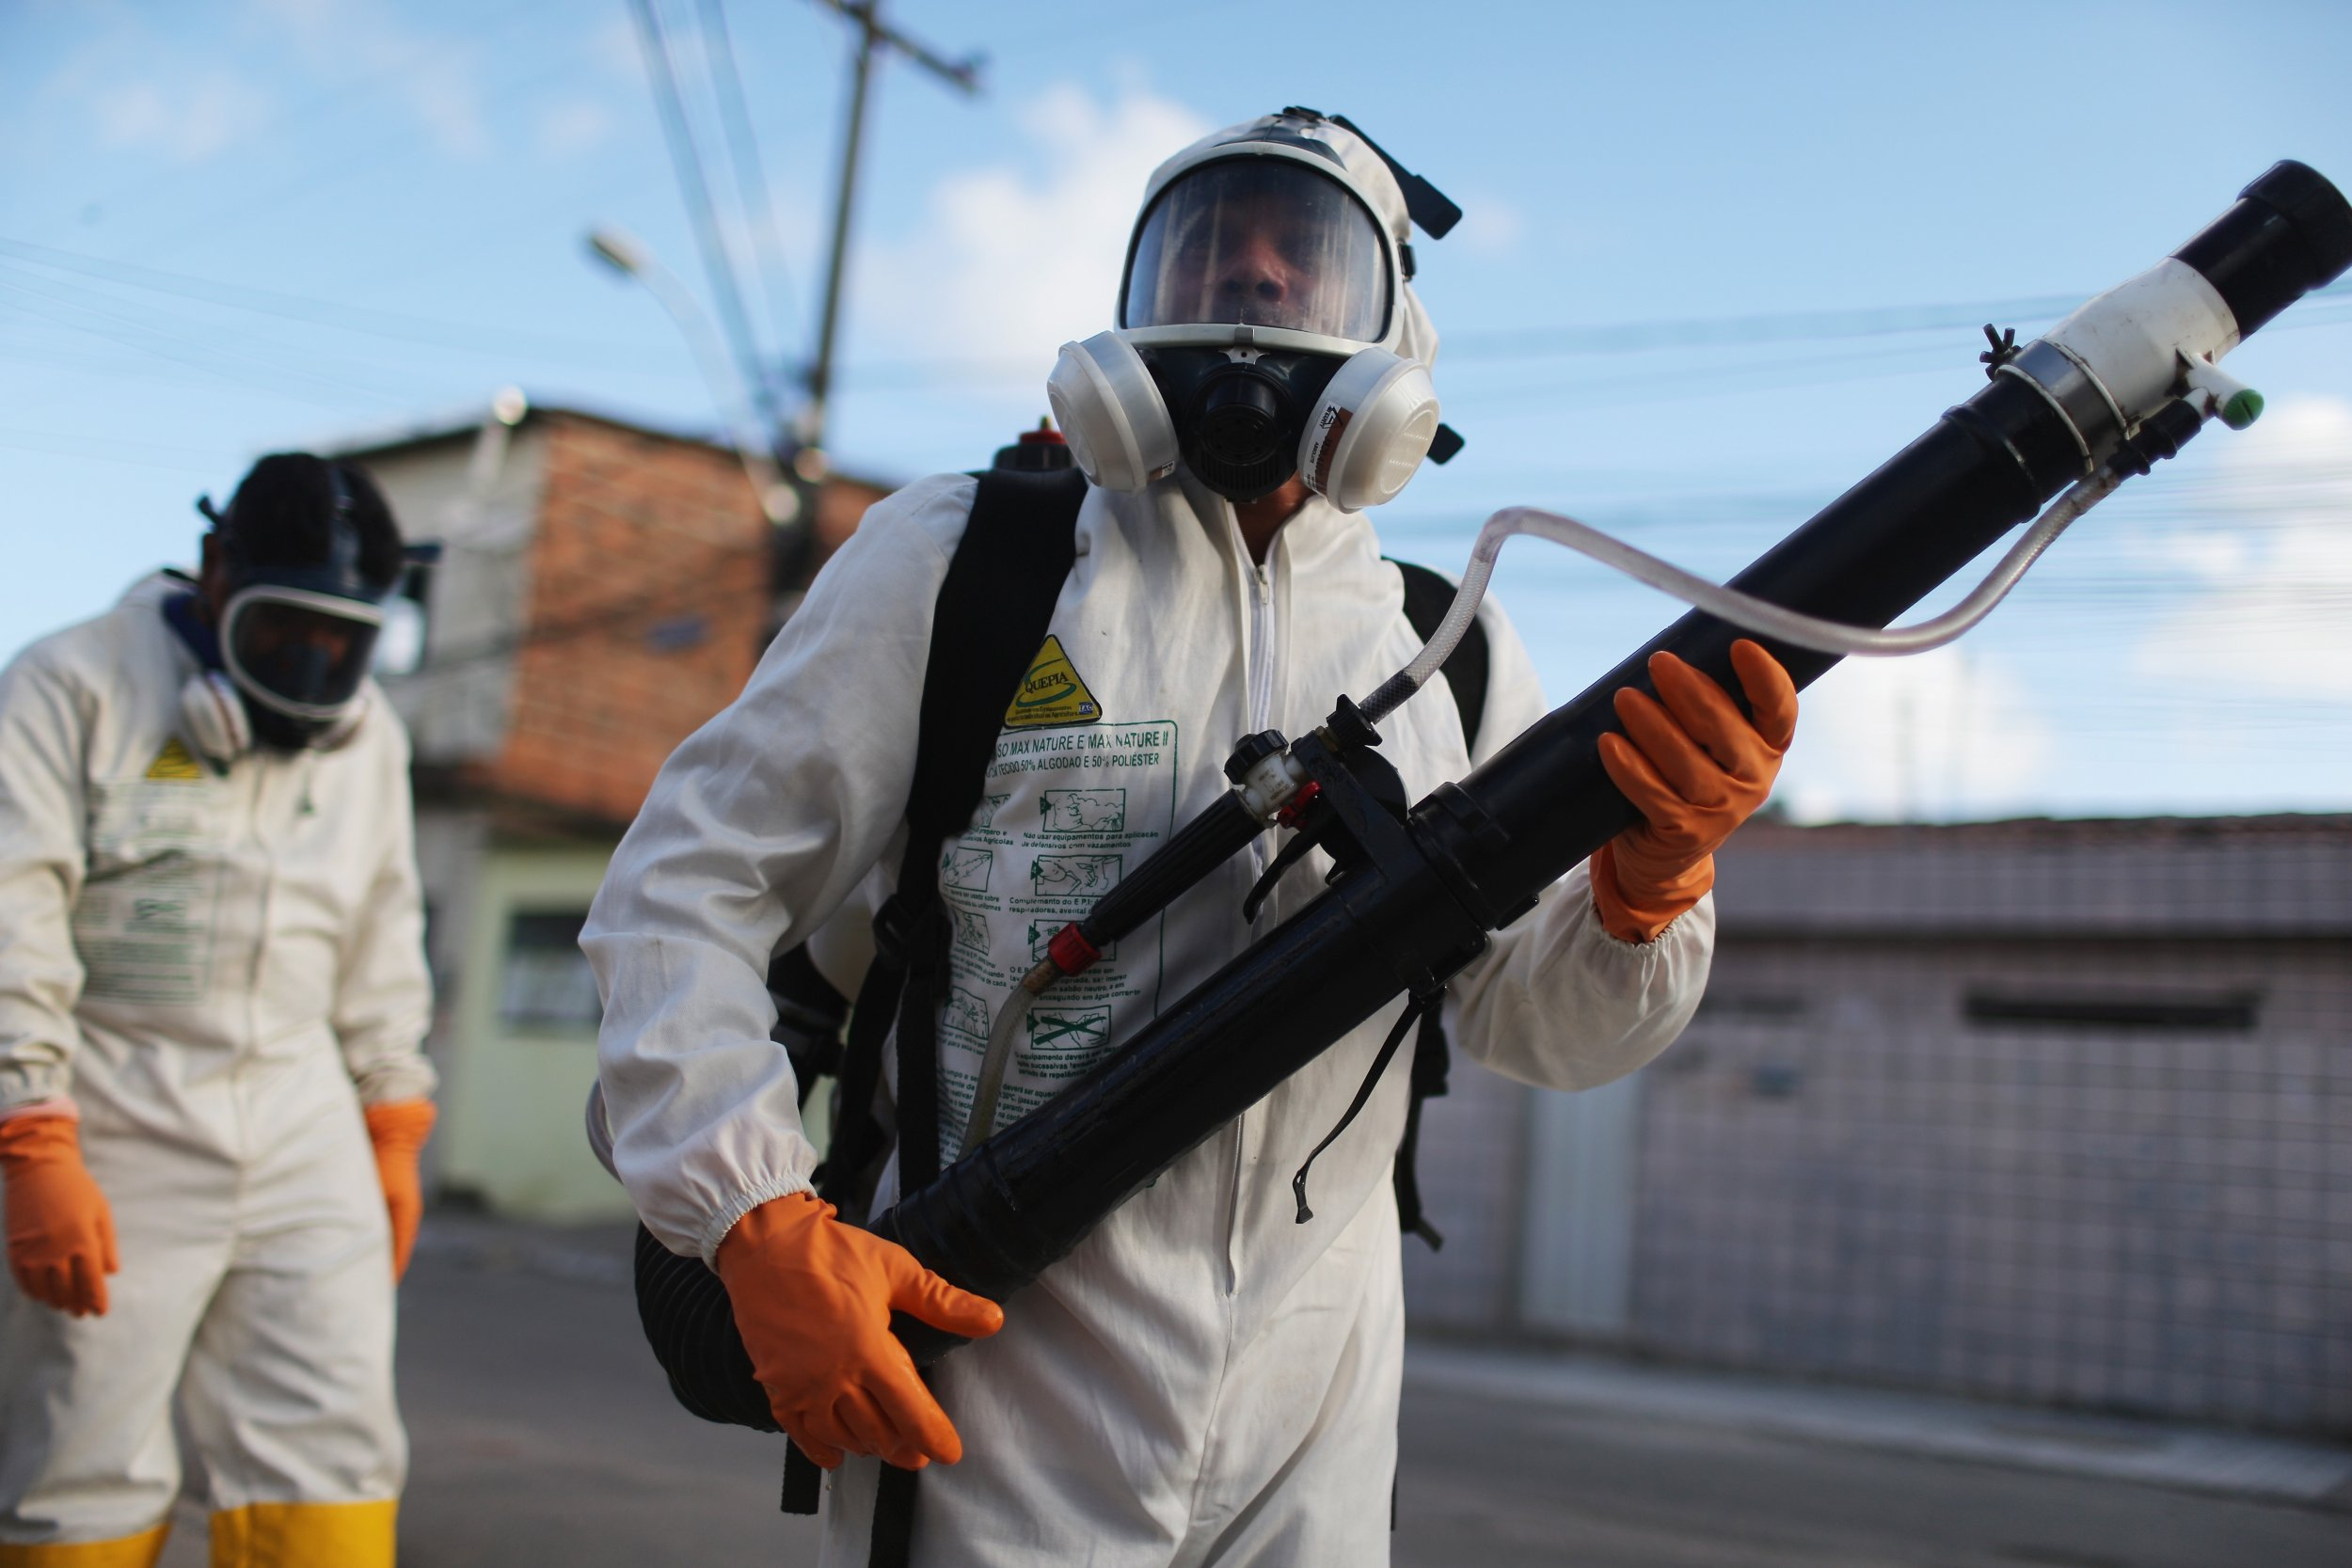 The Zika virus could threaten the Rio 2016 Olympics.